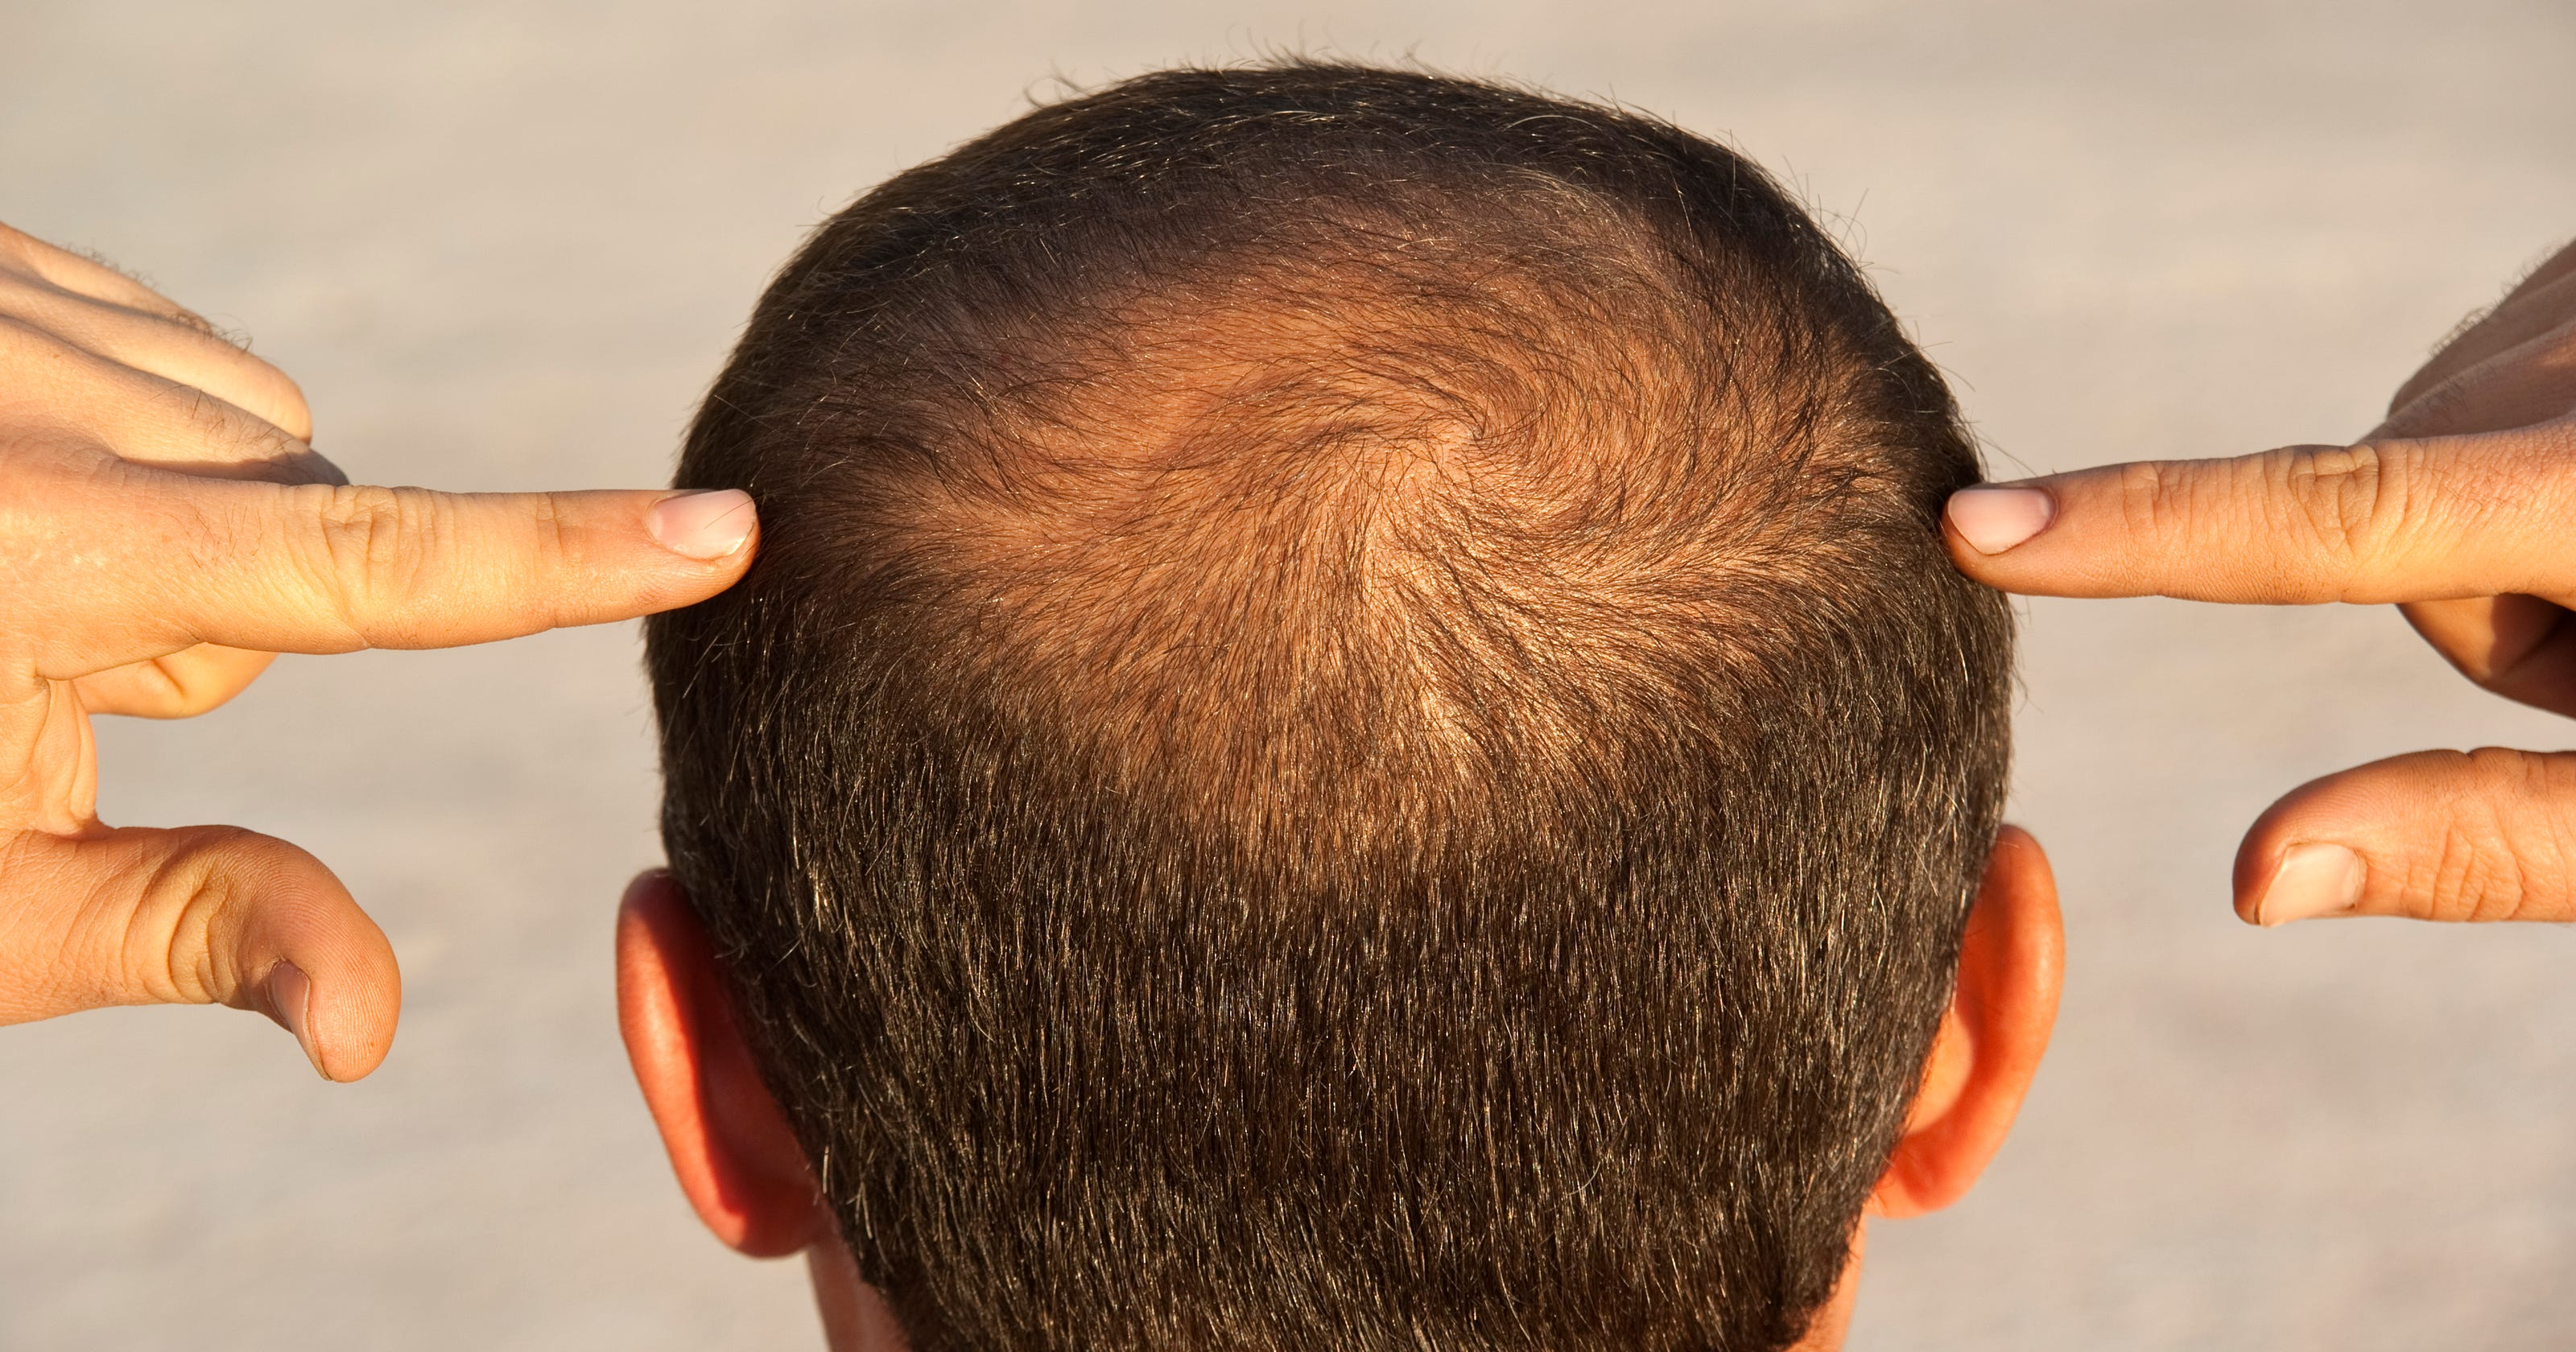 Baldness An Osteoporosis Drug Could Help Grow Hair